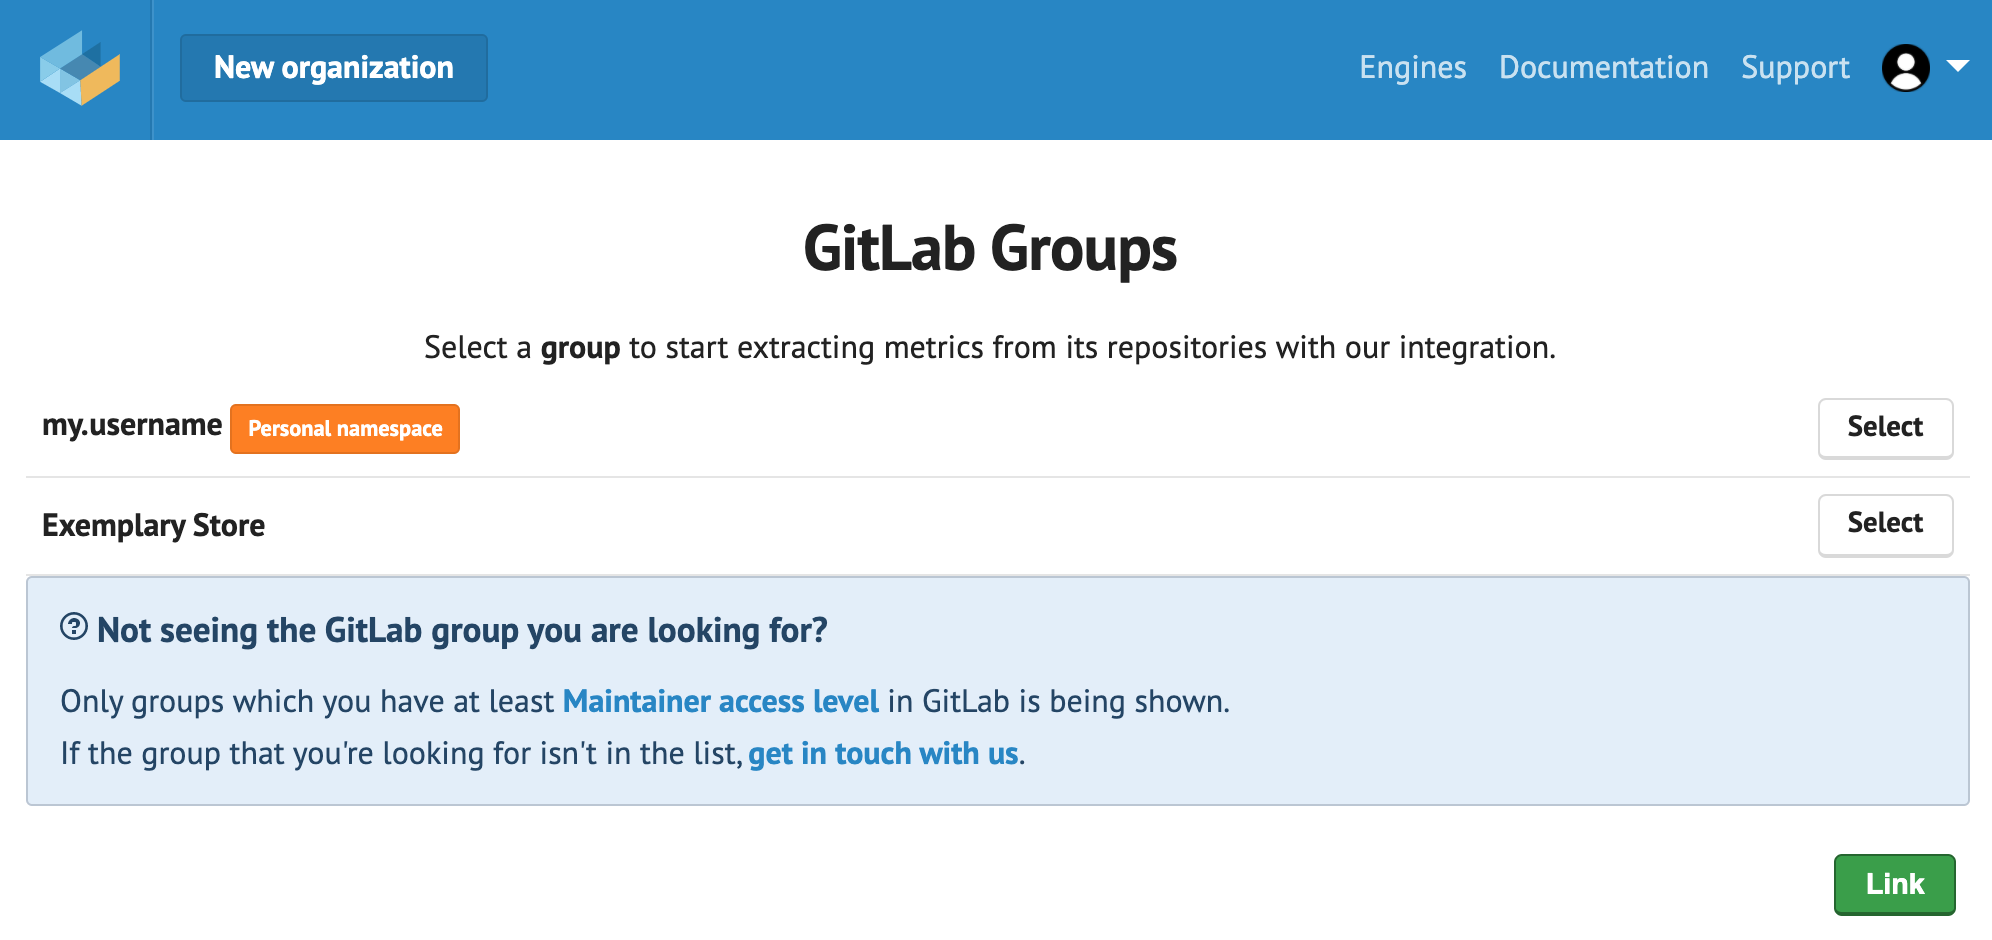 Select the GitLab group